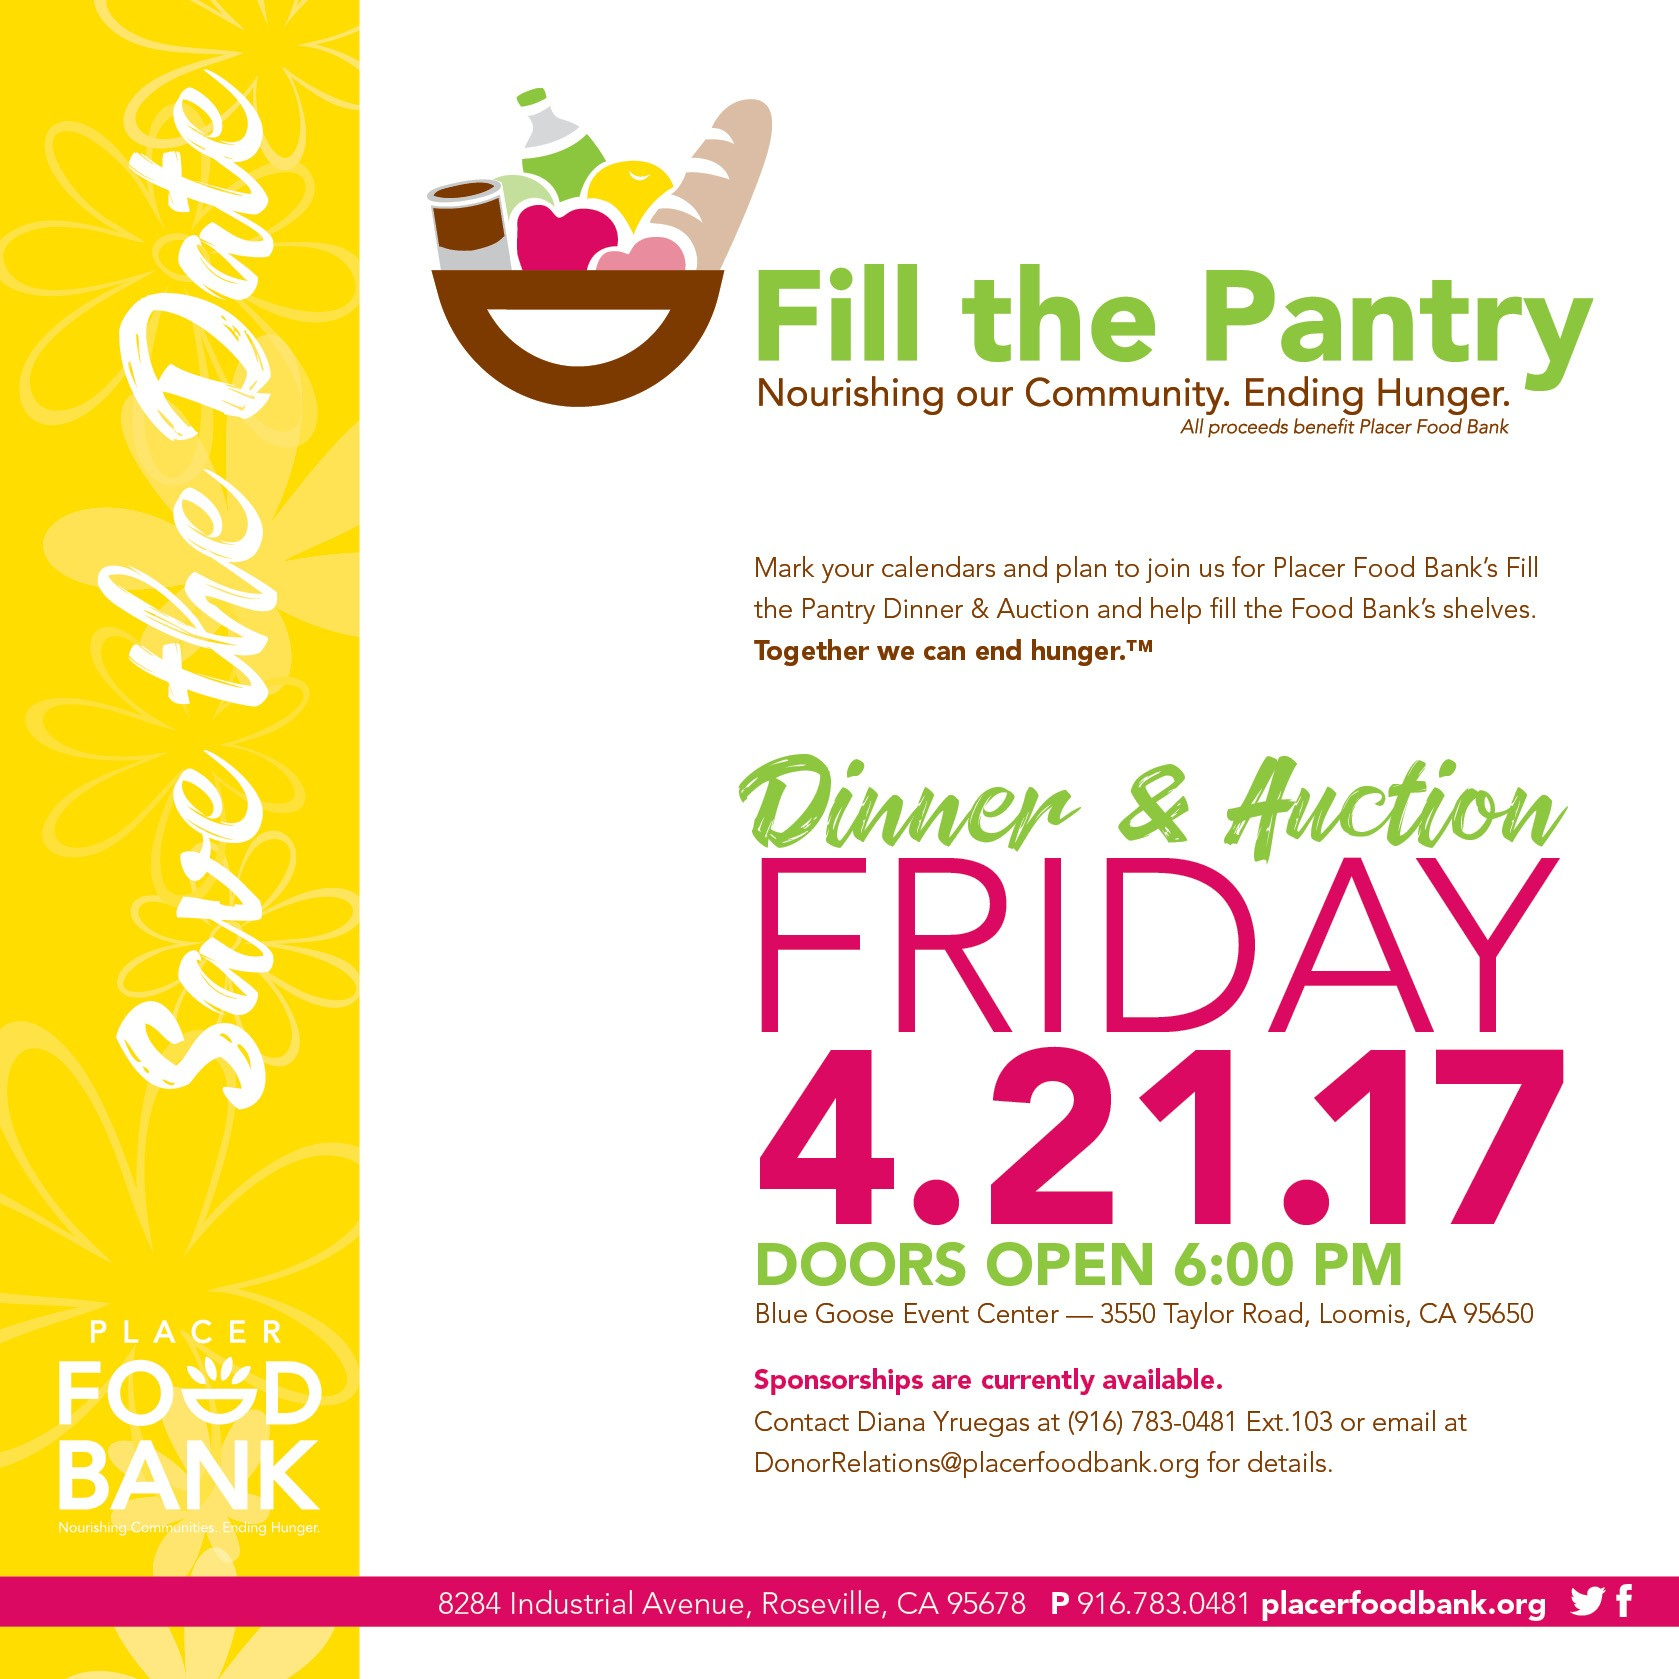 Fill the Pantry Dinner & Auction